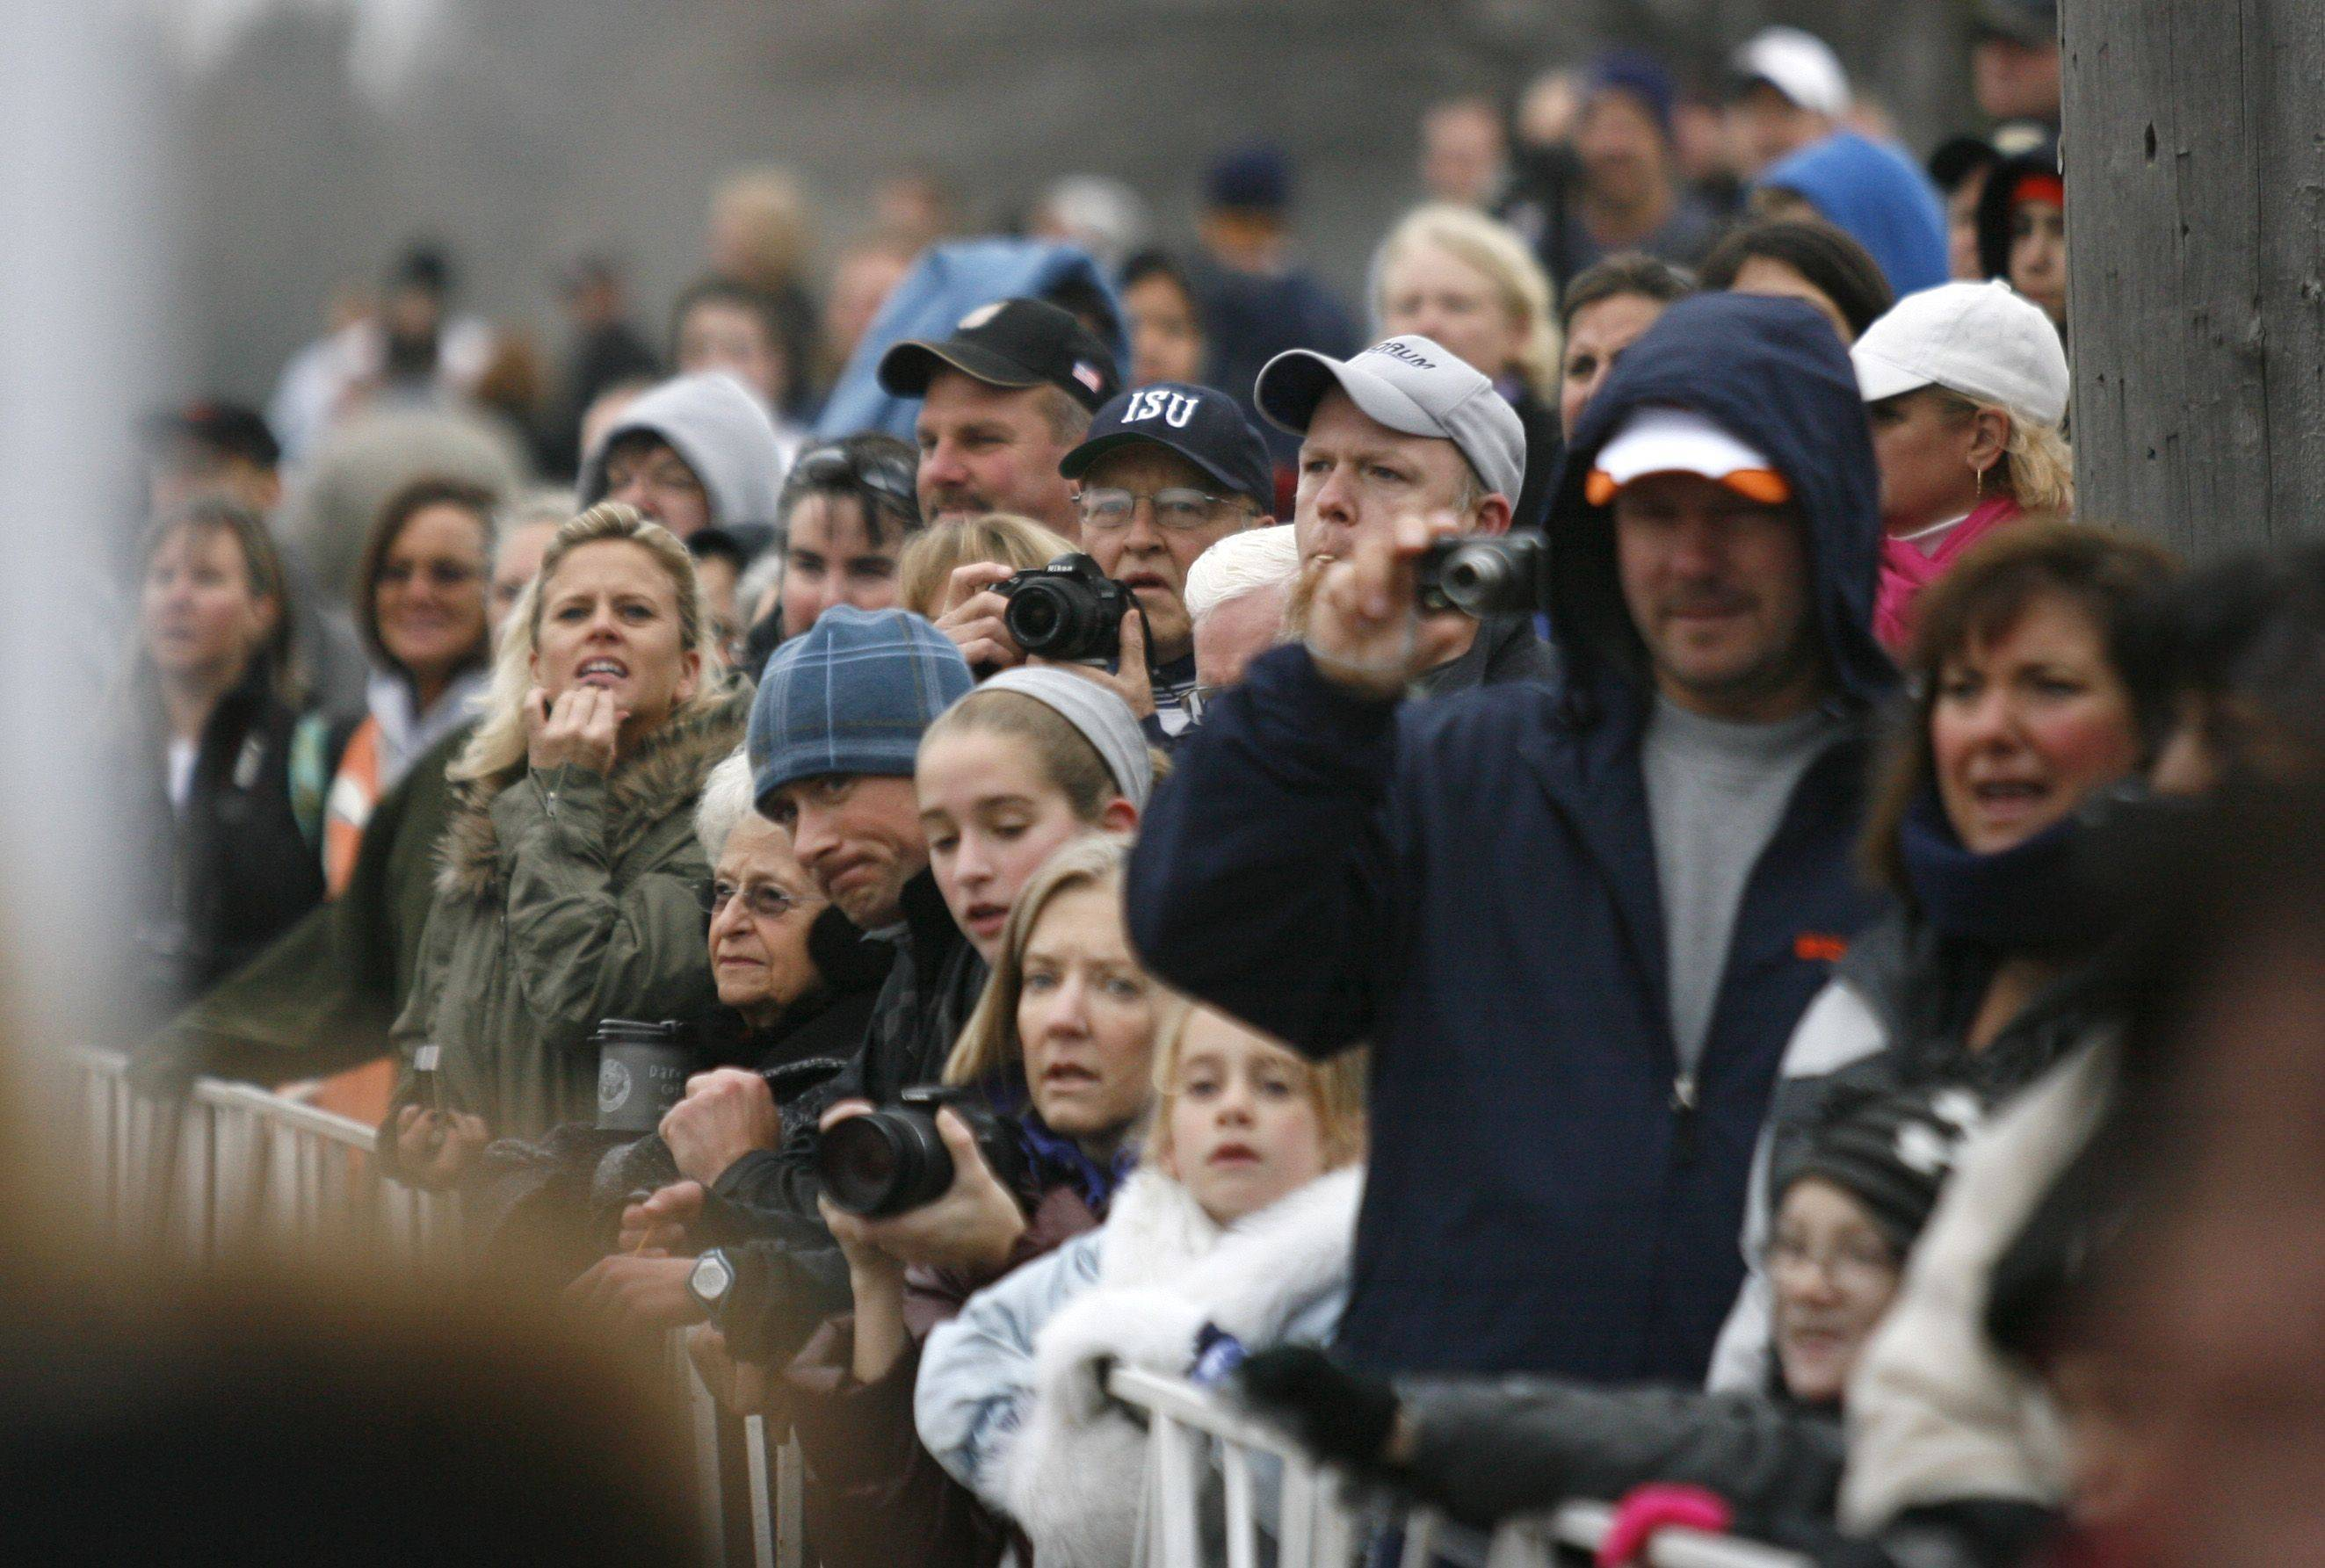 Hundreds line the course Thursday morning to cheer participants in the Naperville Turkey Trot.